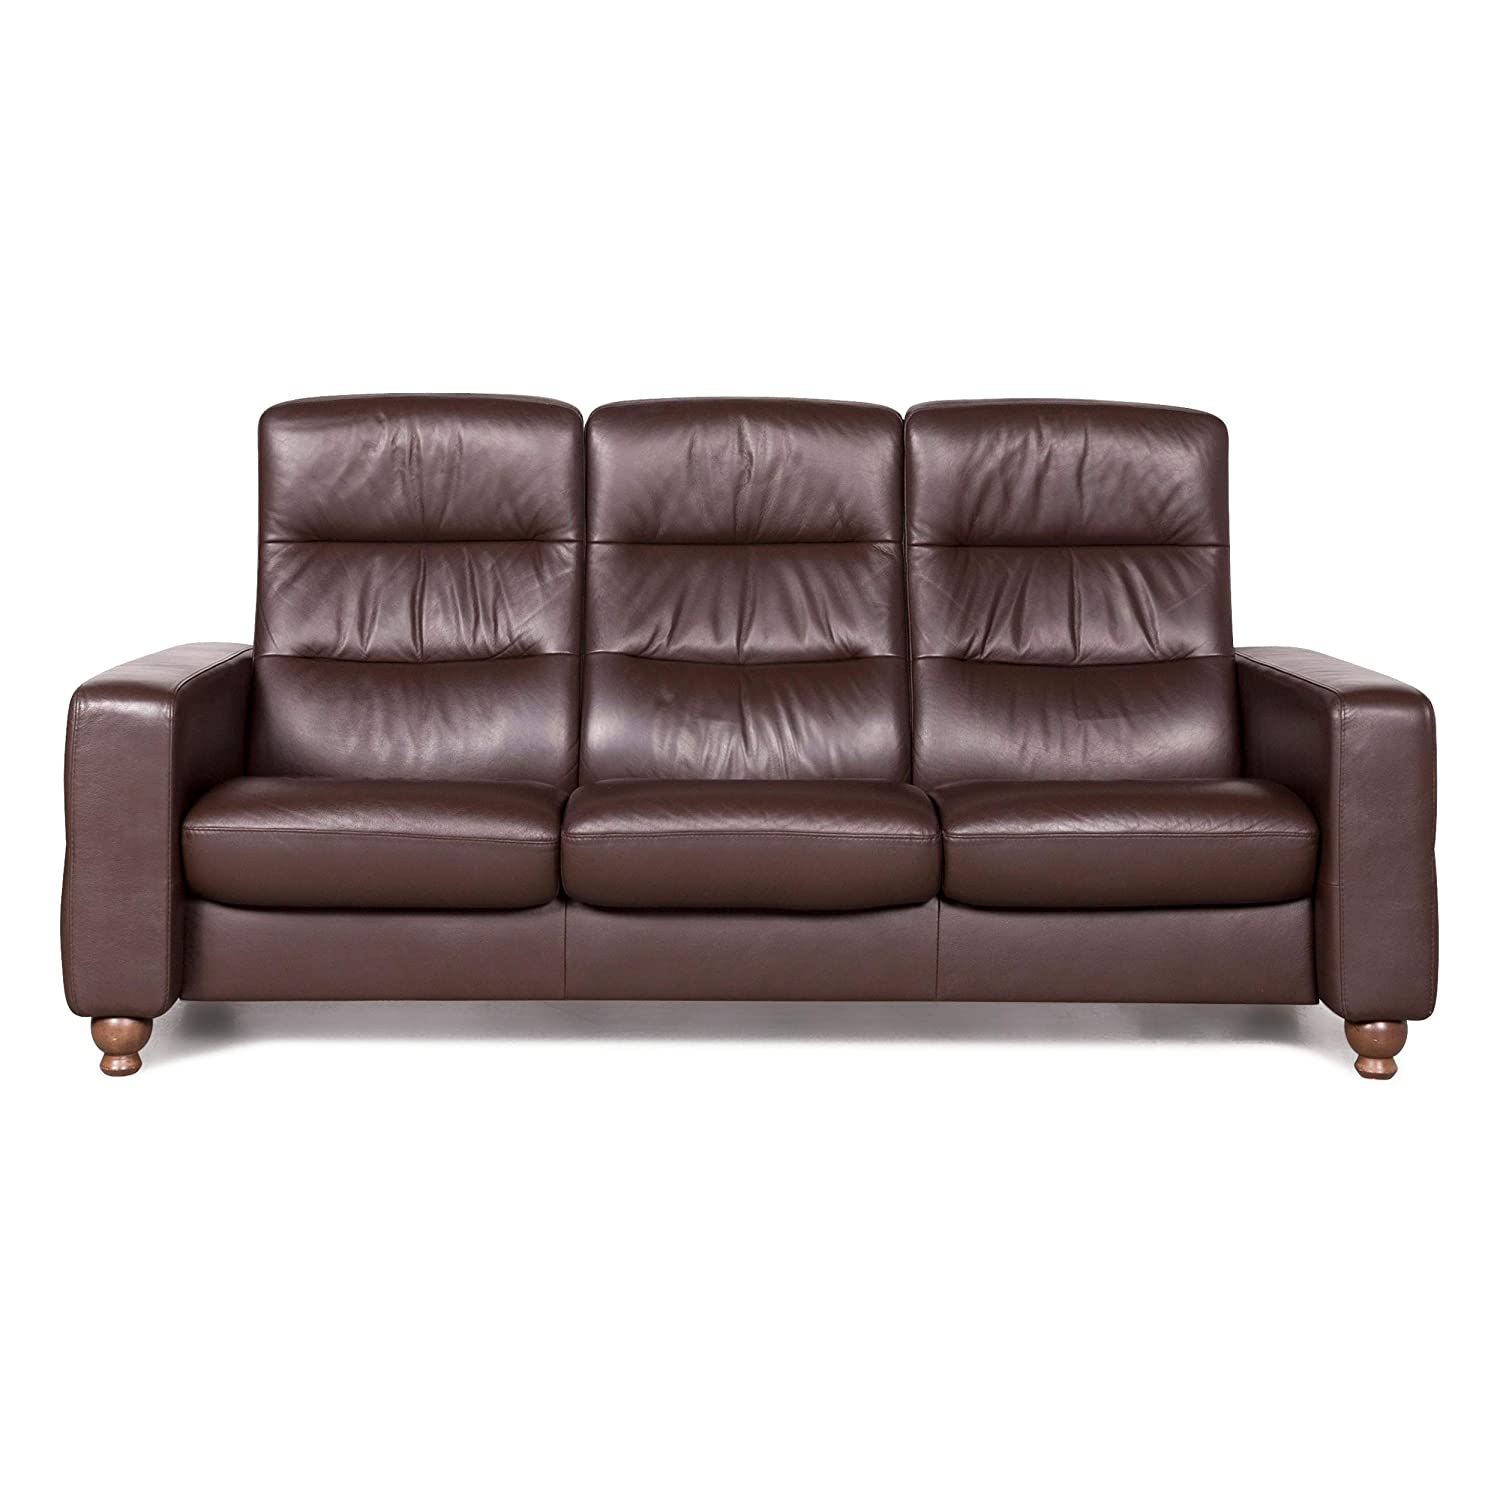 Stressless Designer Leather Sofa Brown Genuine Leather Three ...